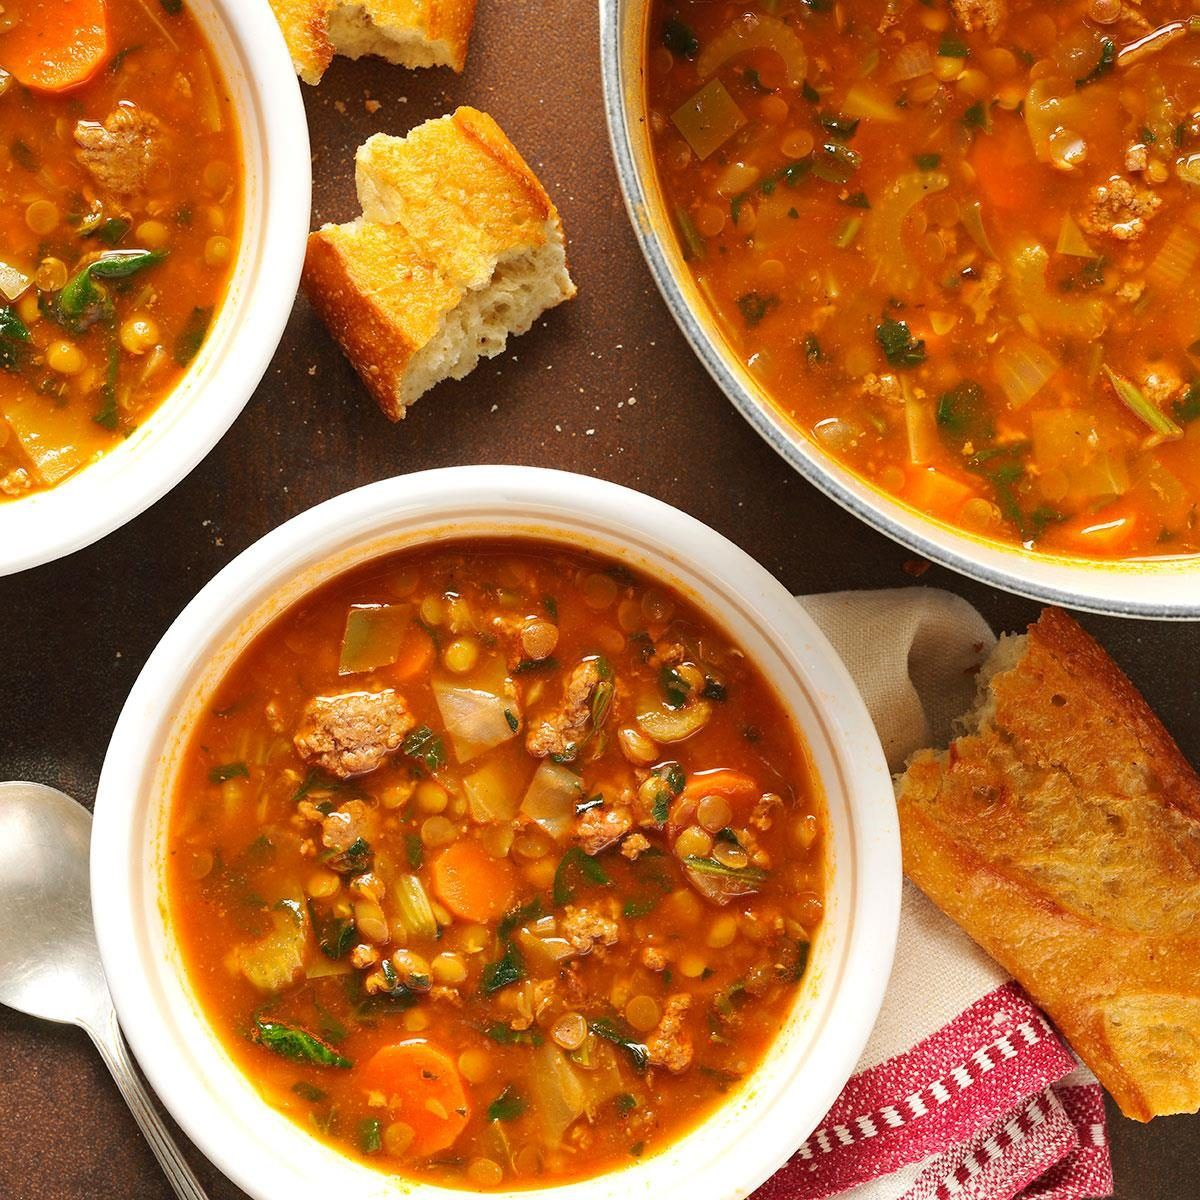 Beef Lentil Soup Recipe In 2020 Soup With Ground Beef Beef Soup Recipes Lentil Soup Recipes